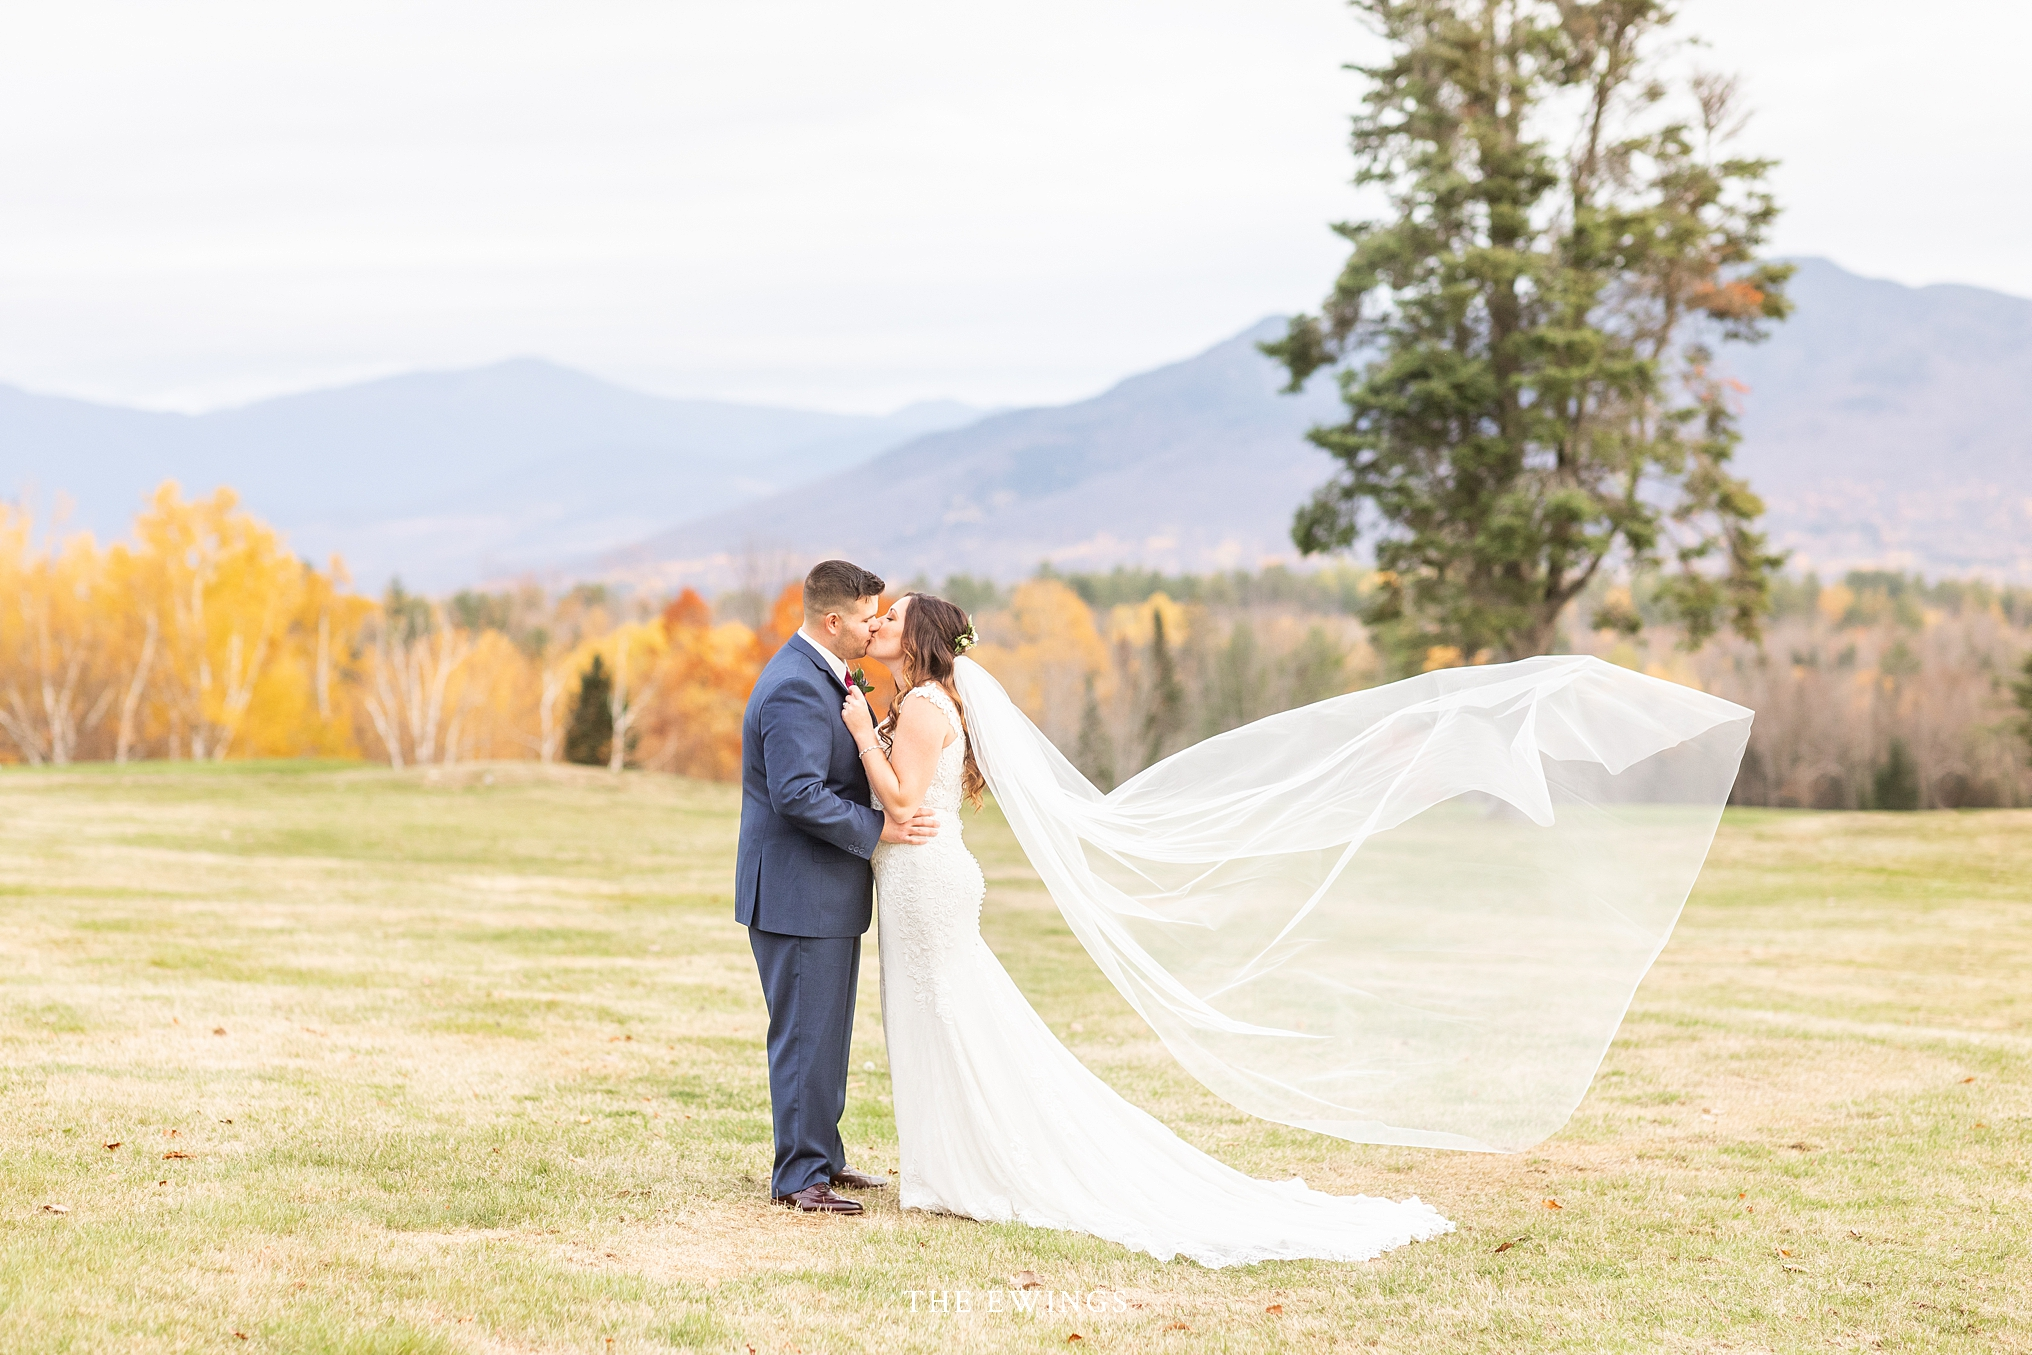 A bride and groom after their wedding at Mountainview grand in the white mountains of upstate new Hampshire.